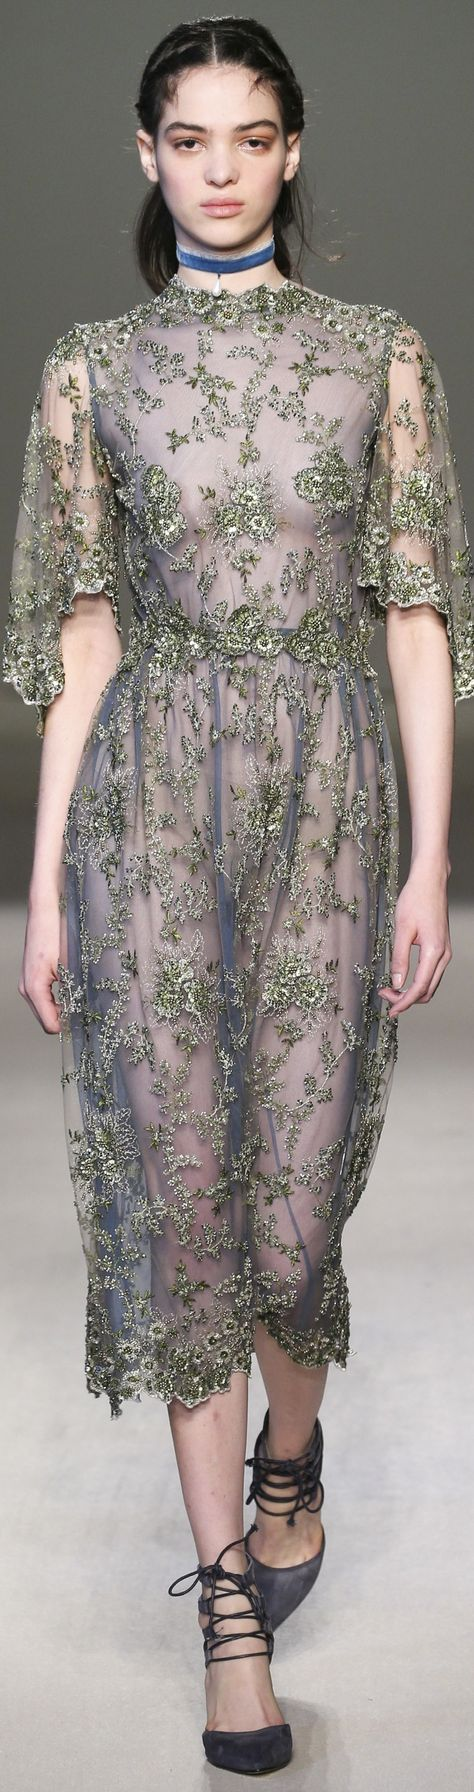 Luisa Beccaria fall 2016 RTW vogue